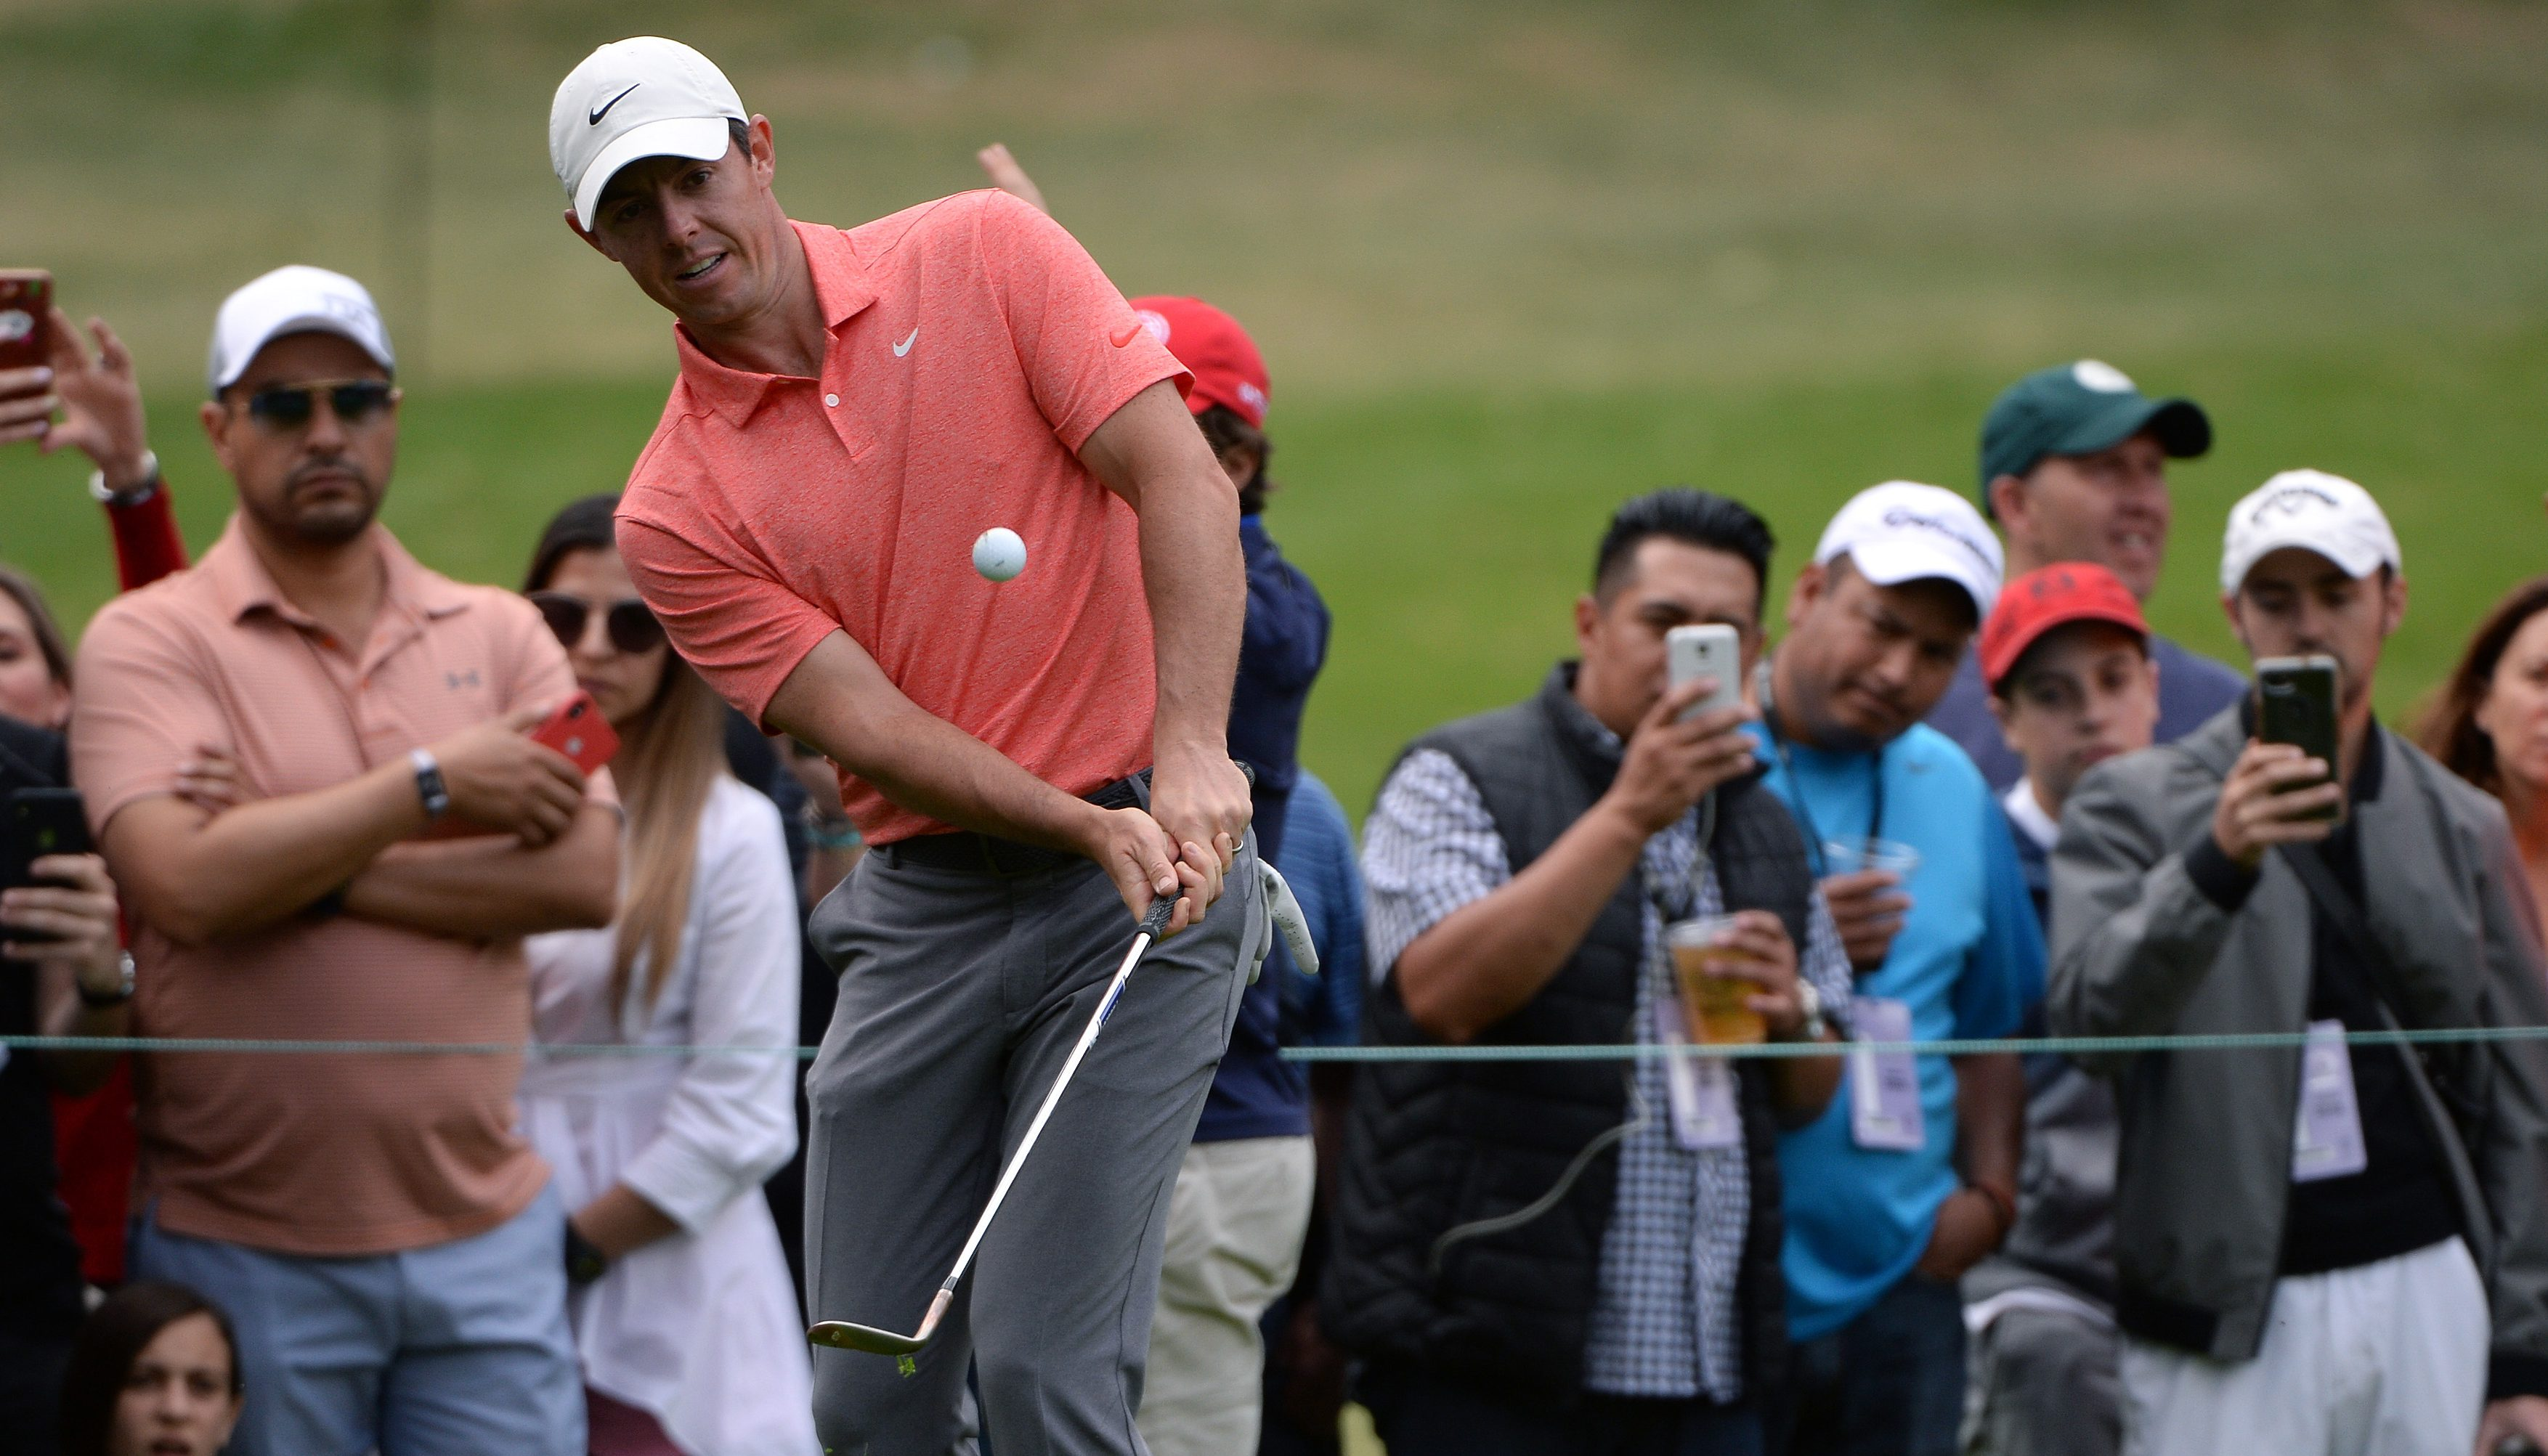 Feb 24, 2019; Mexico City, MEX; Rory McIlroy plays his shot on the 13th hole during the final round of the WGC - Mexico Championship golf tournament at Club de Golf Chapultepec. Mandatory Credit: Orlando Ramirez-USA TODAY Sports